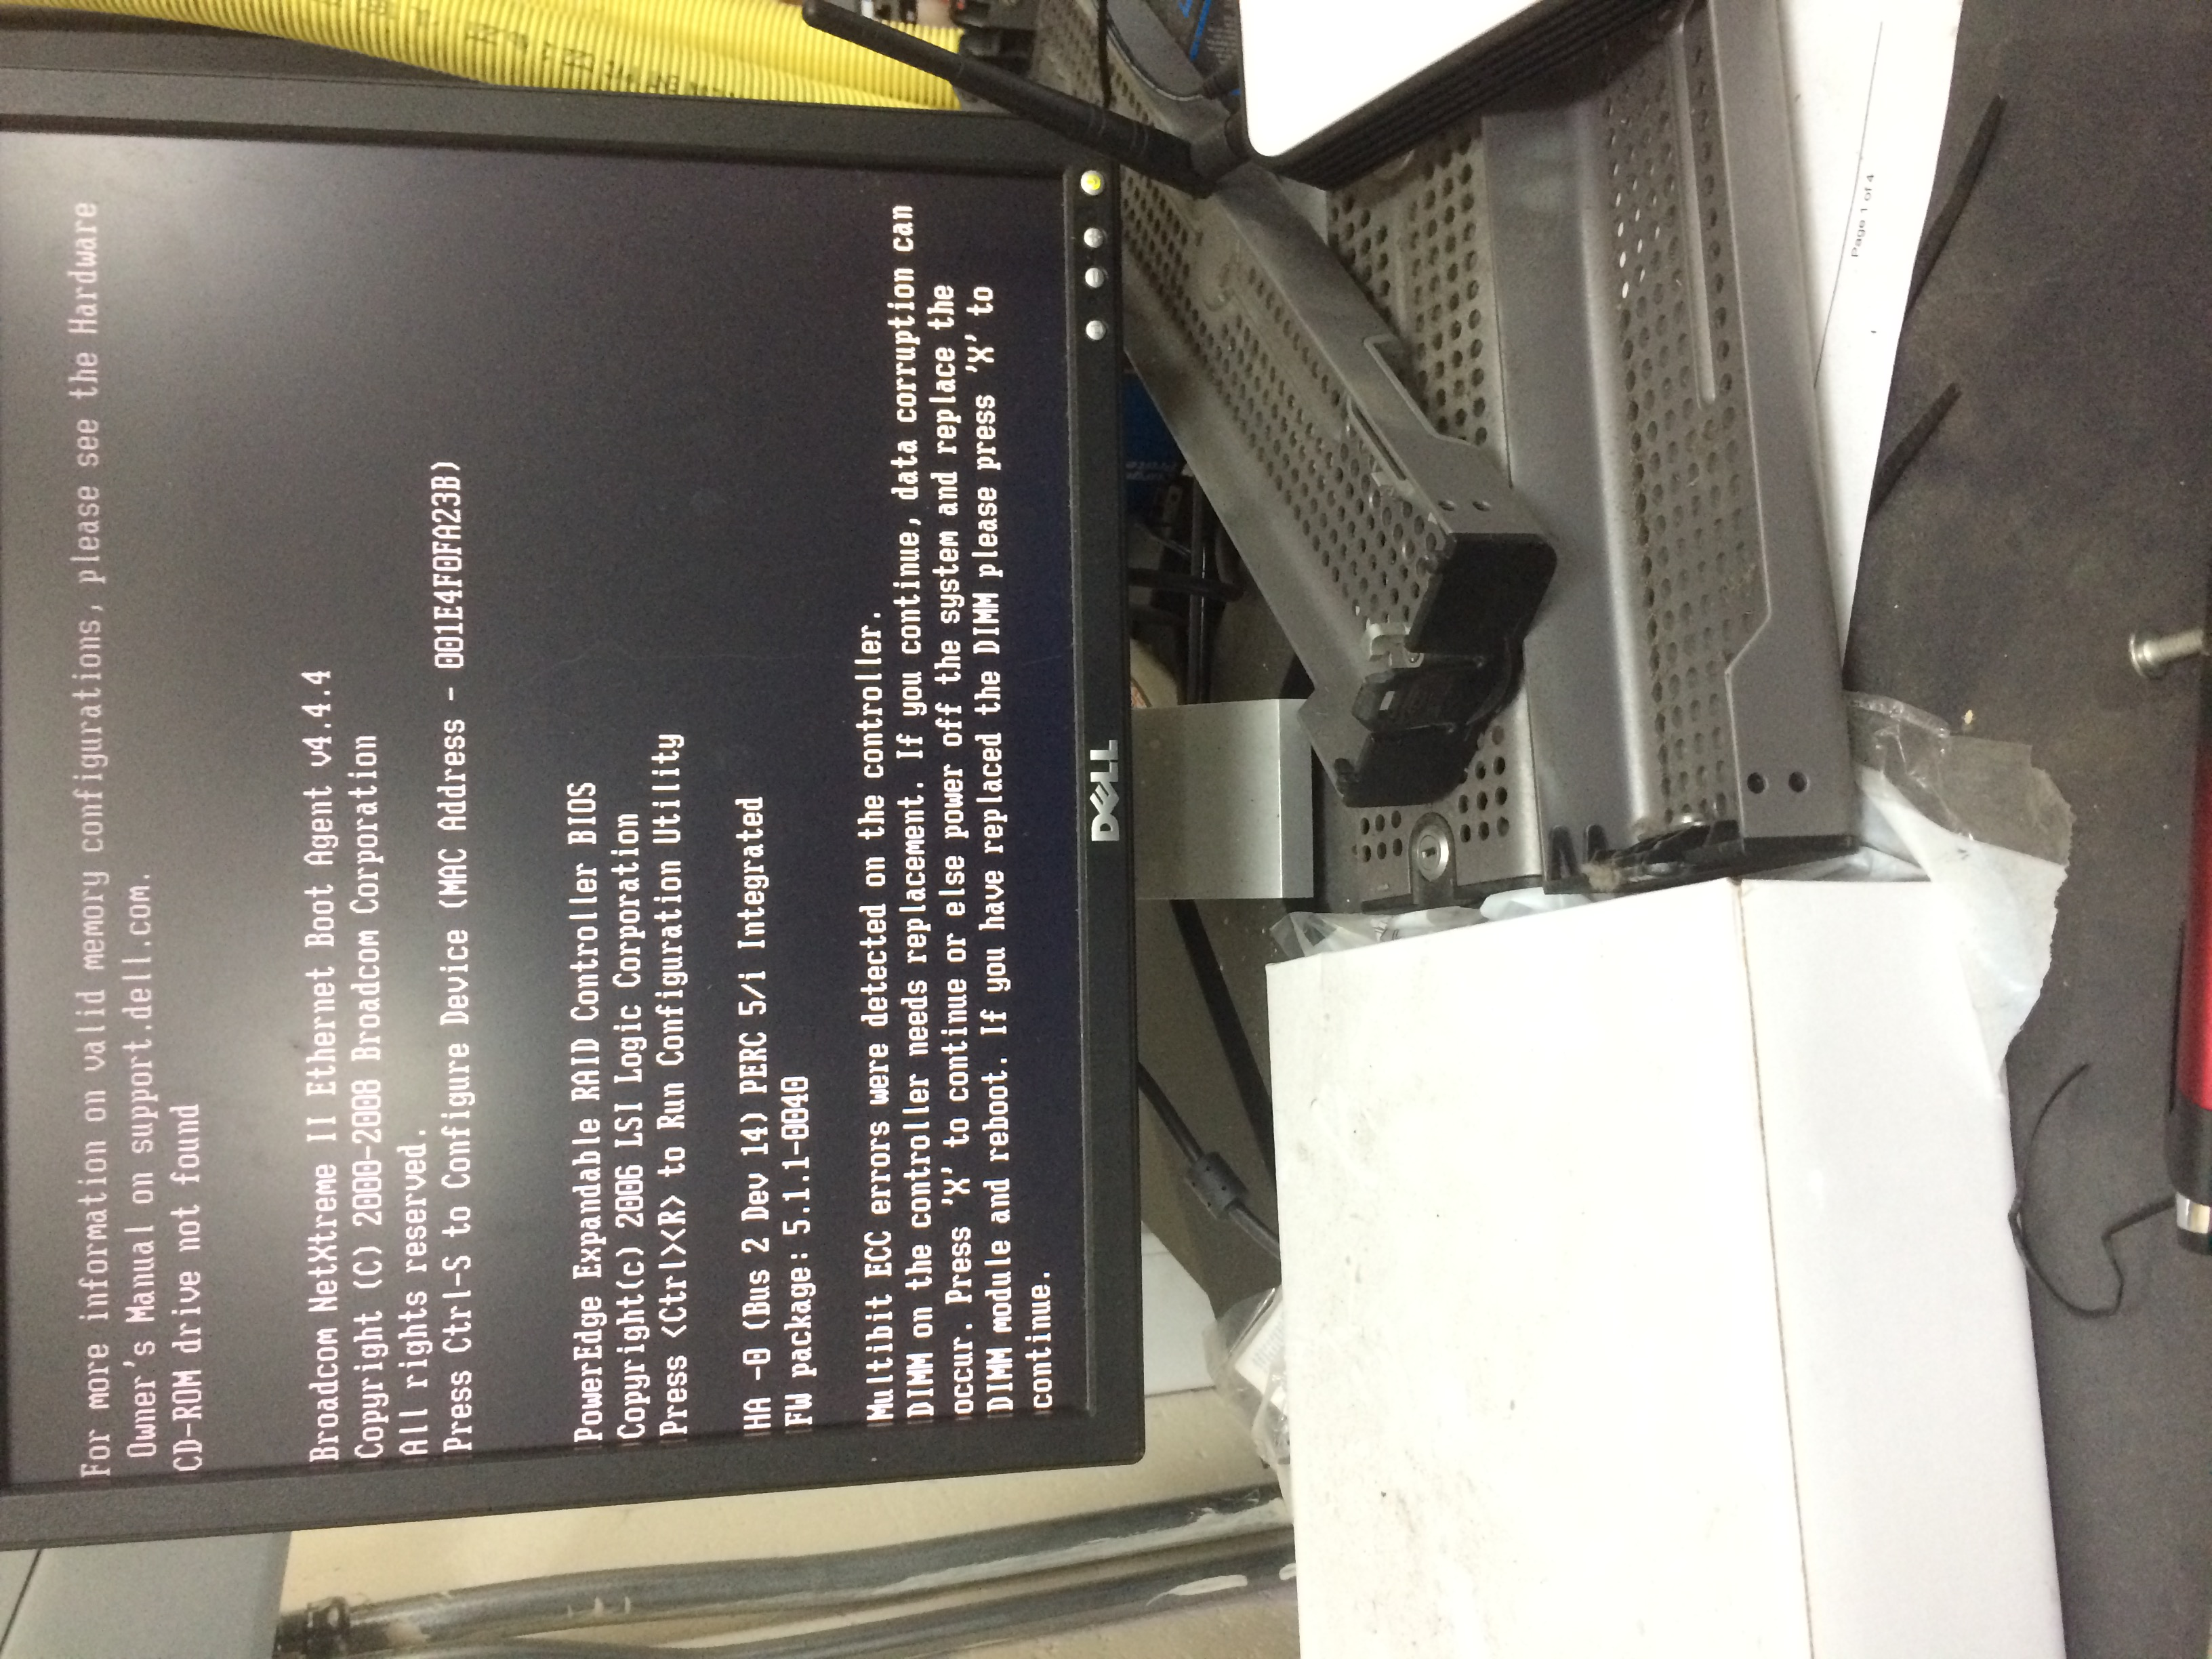 How To Clear System Event Log Dell Poweredge 2950 - Best Pictures Of